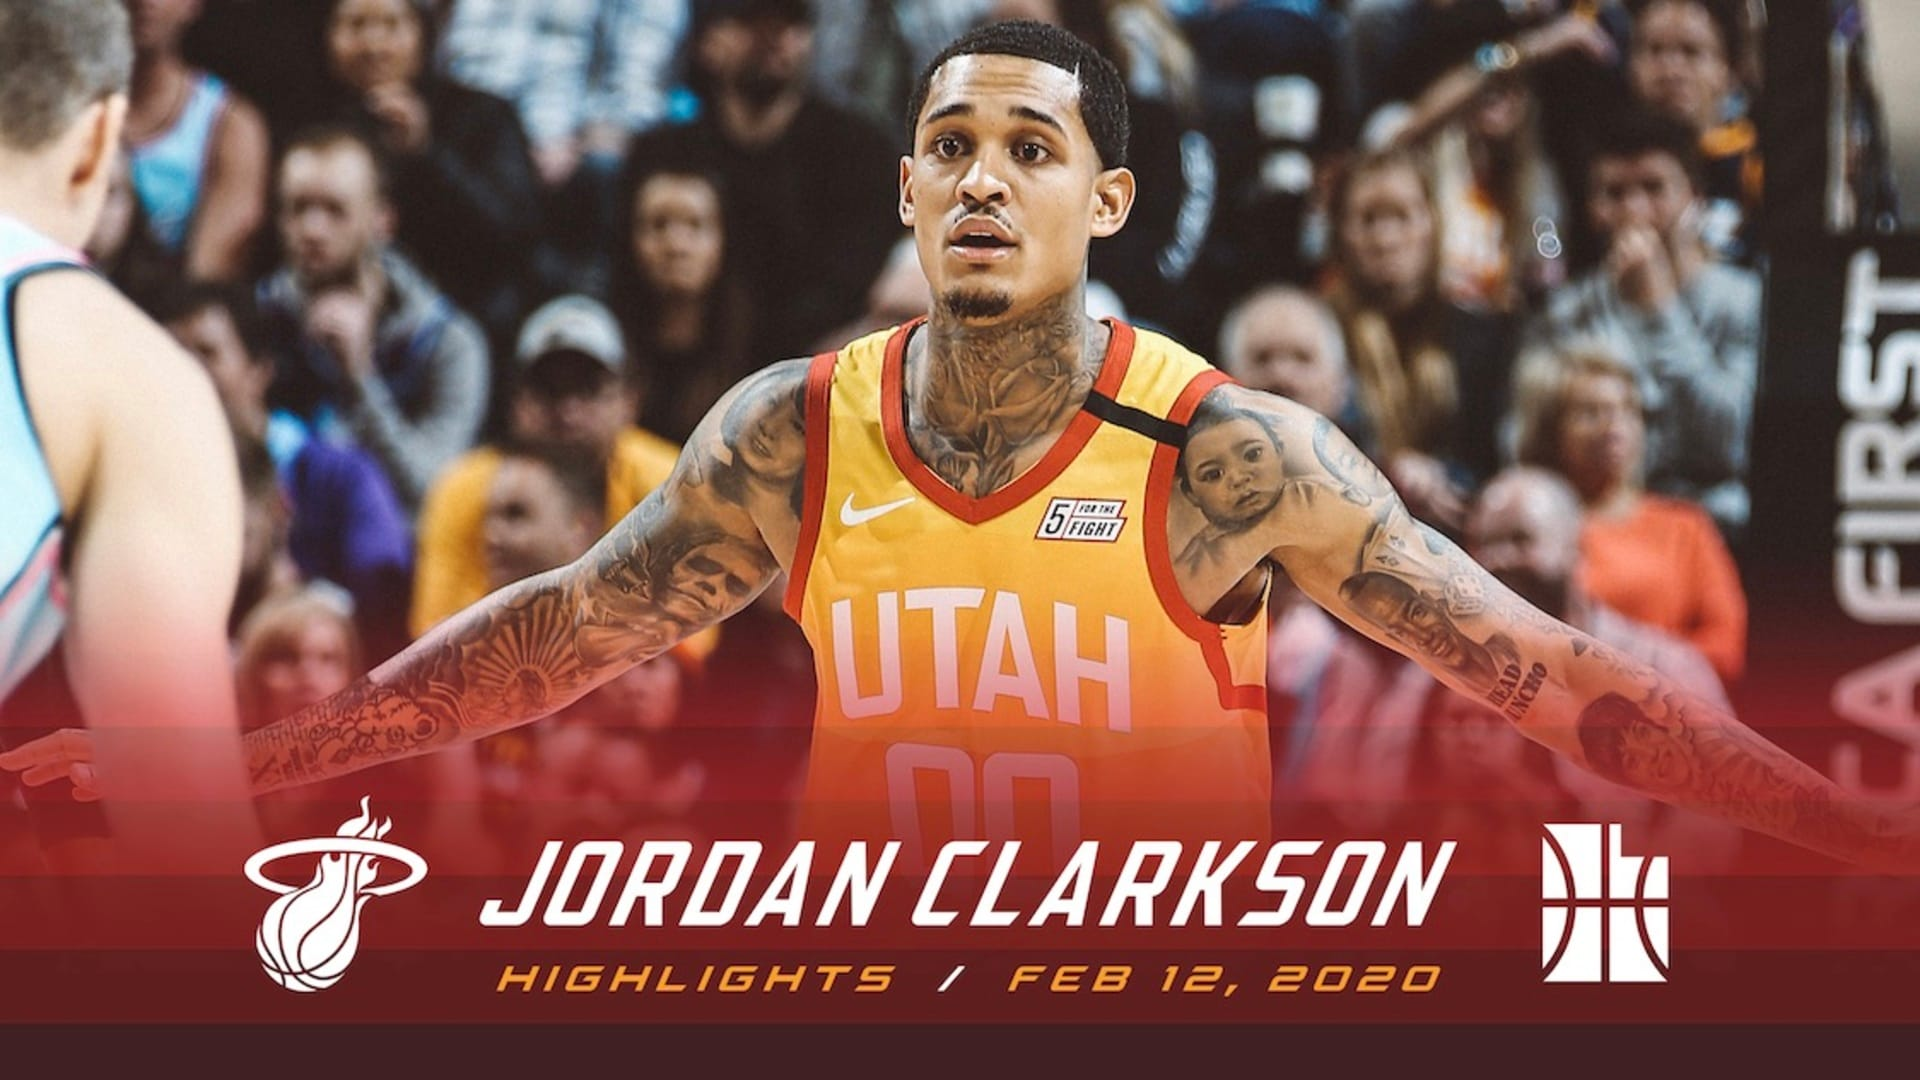 Highlights: Jordan Clarkson — 21 points, 4 3-pointers